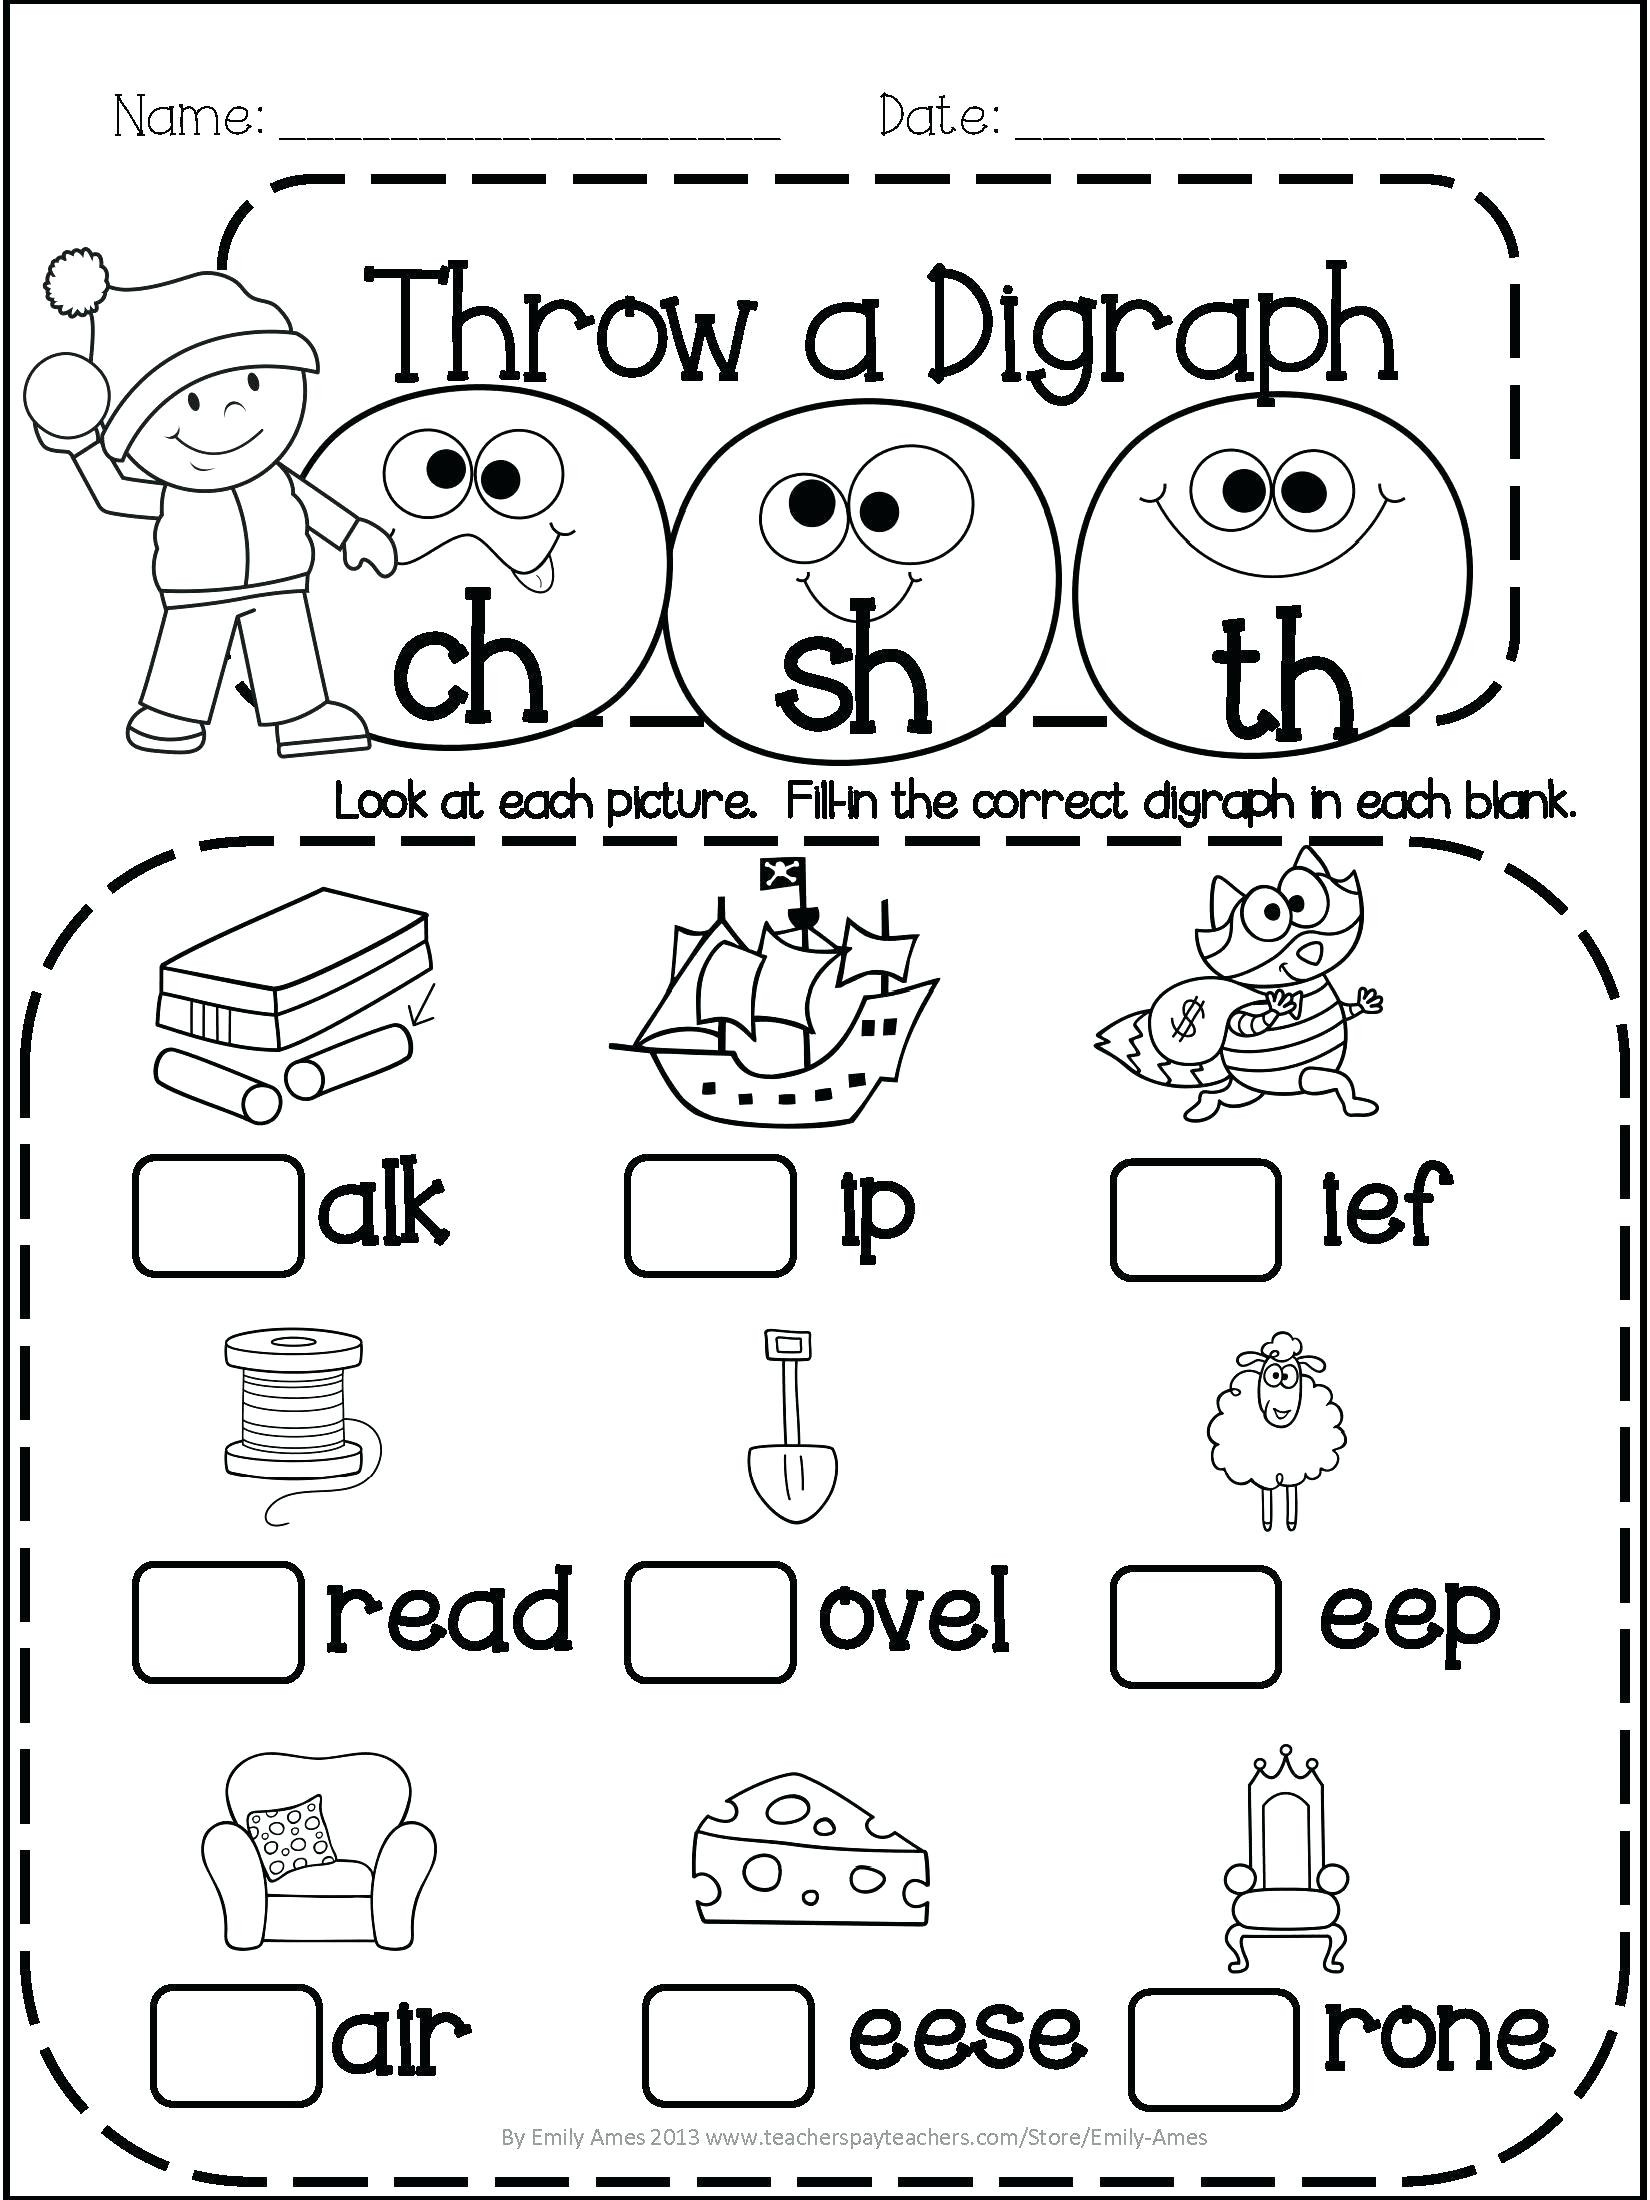 Free 1st Grade Comprehension Worksheets Generationinitiative Free Printable Math Worksheets 5th